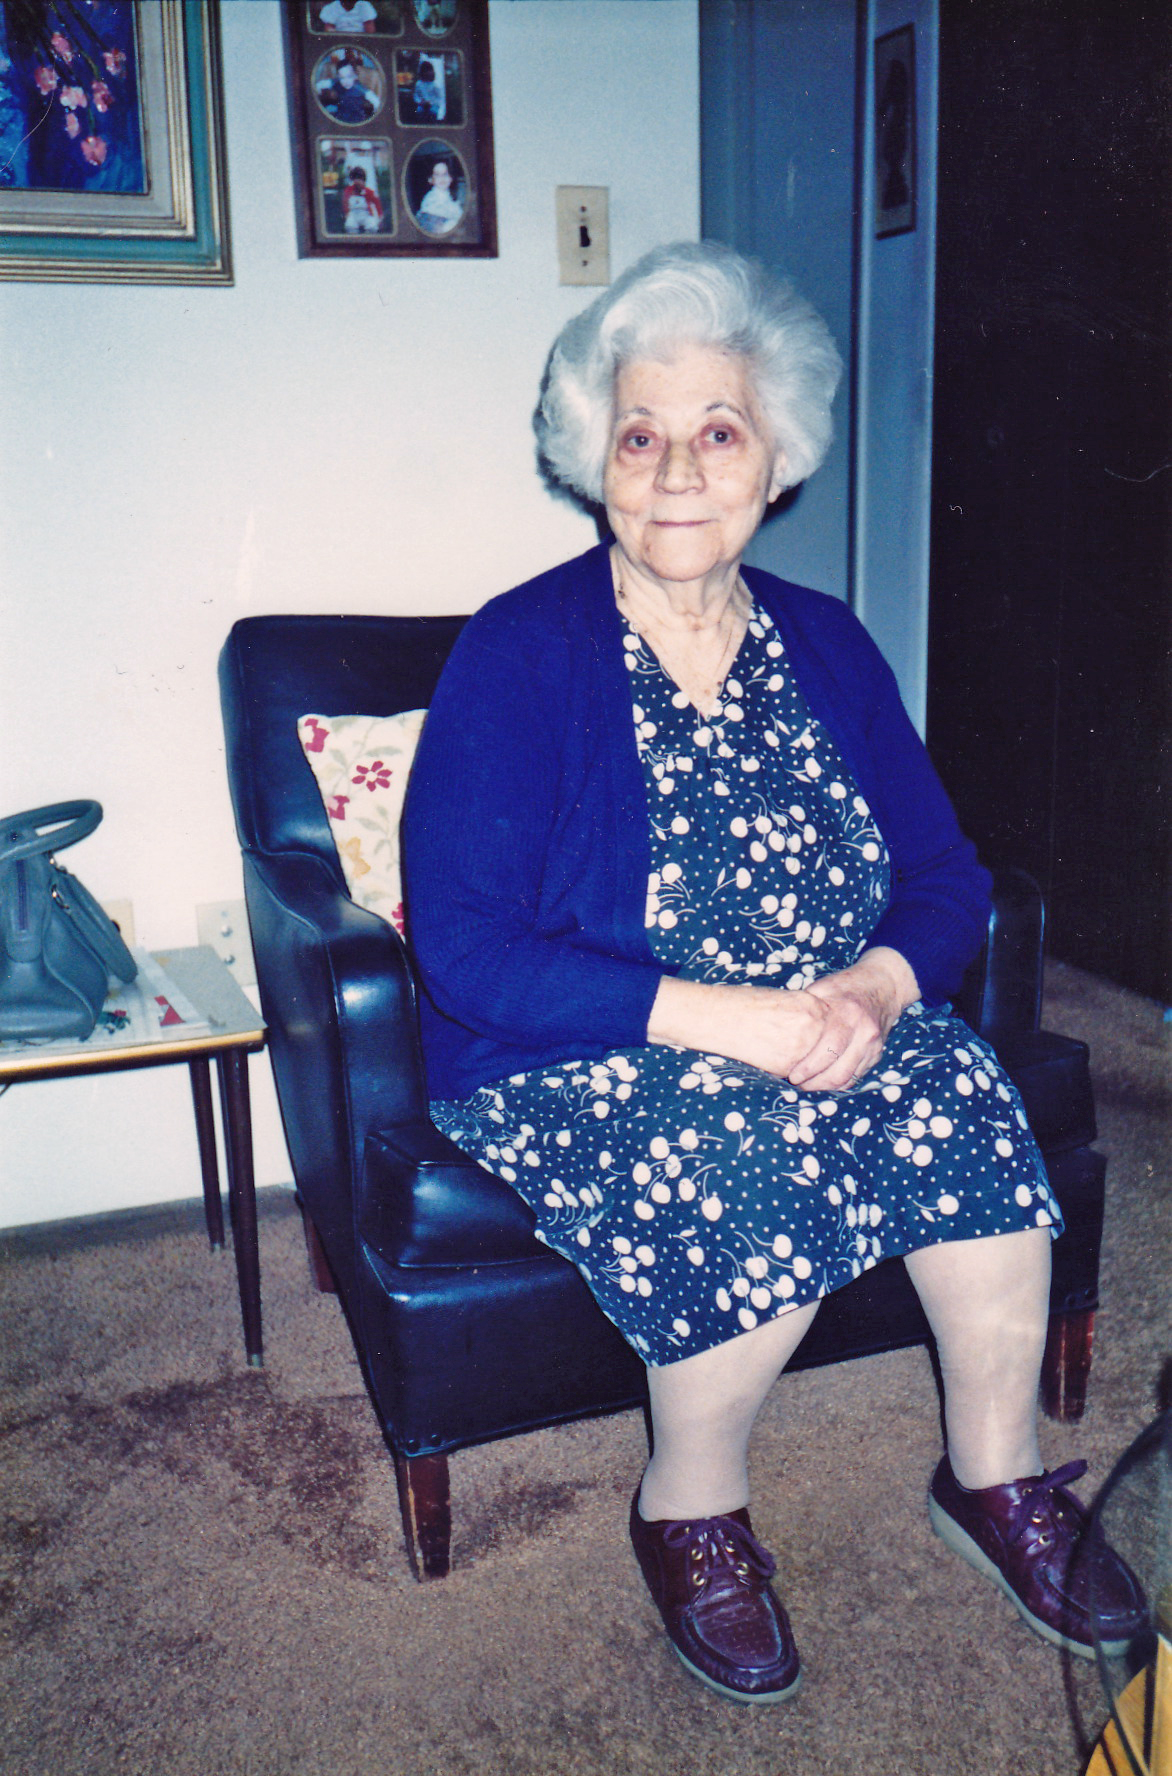 My grandmother, in her apartment.